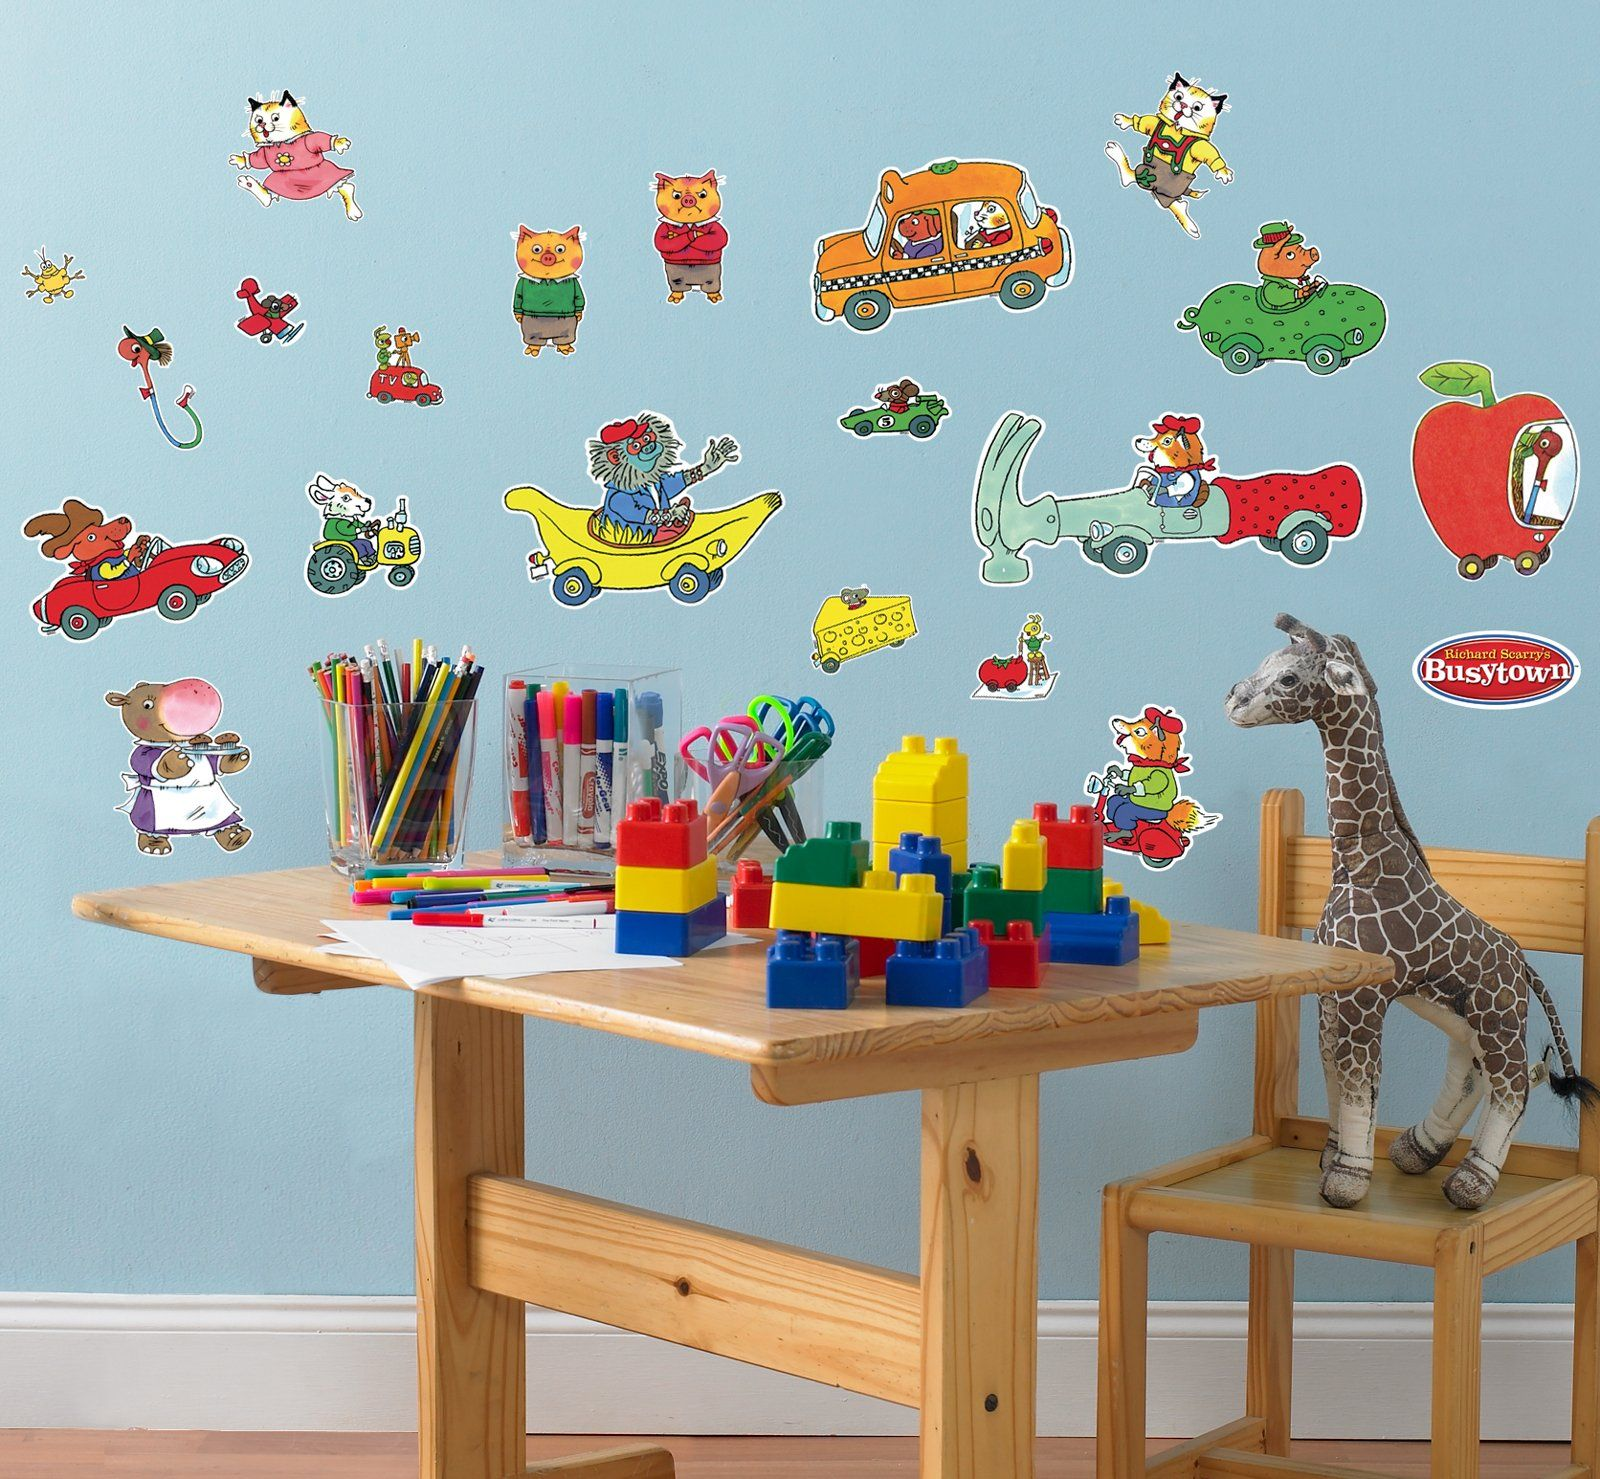 Richard scarrys busytown removable wall decorations from richard scarrys busytown removable wall decorations from birthdayexpress tons of other party supplies amipublicfo Image collections